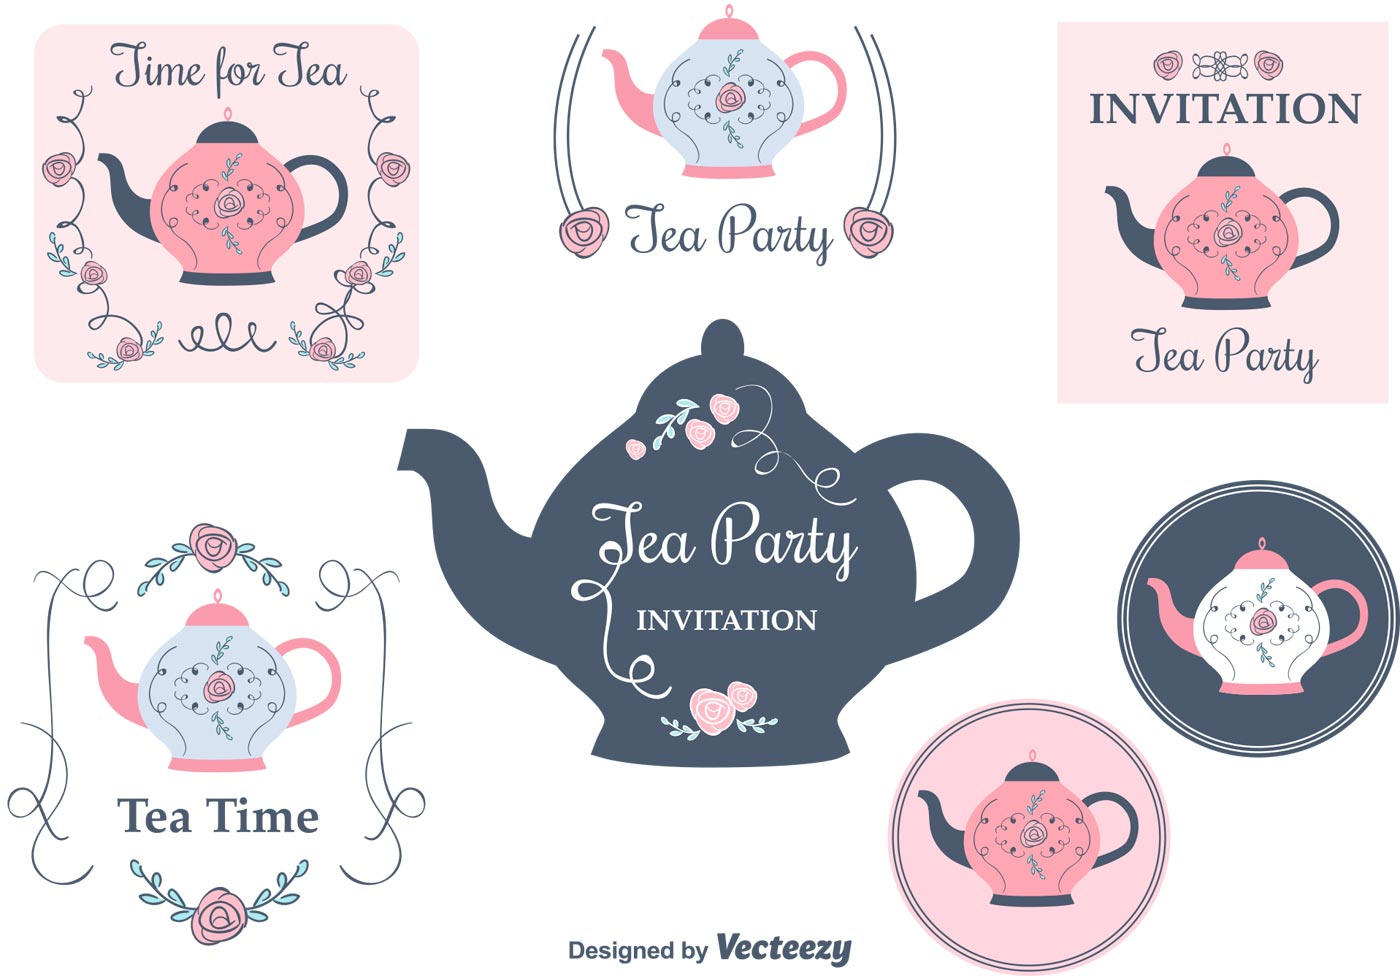 Tea Party Invitation Cards - Download Free Vector Art, Stock ...